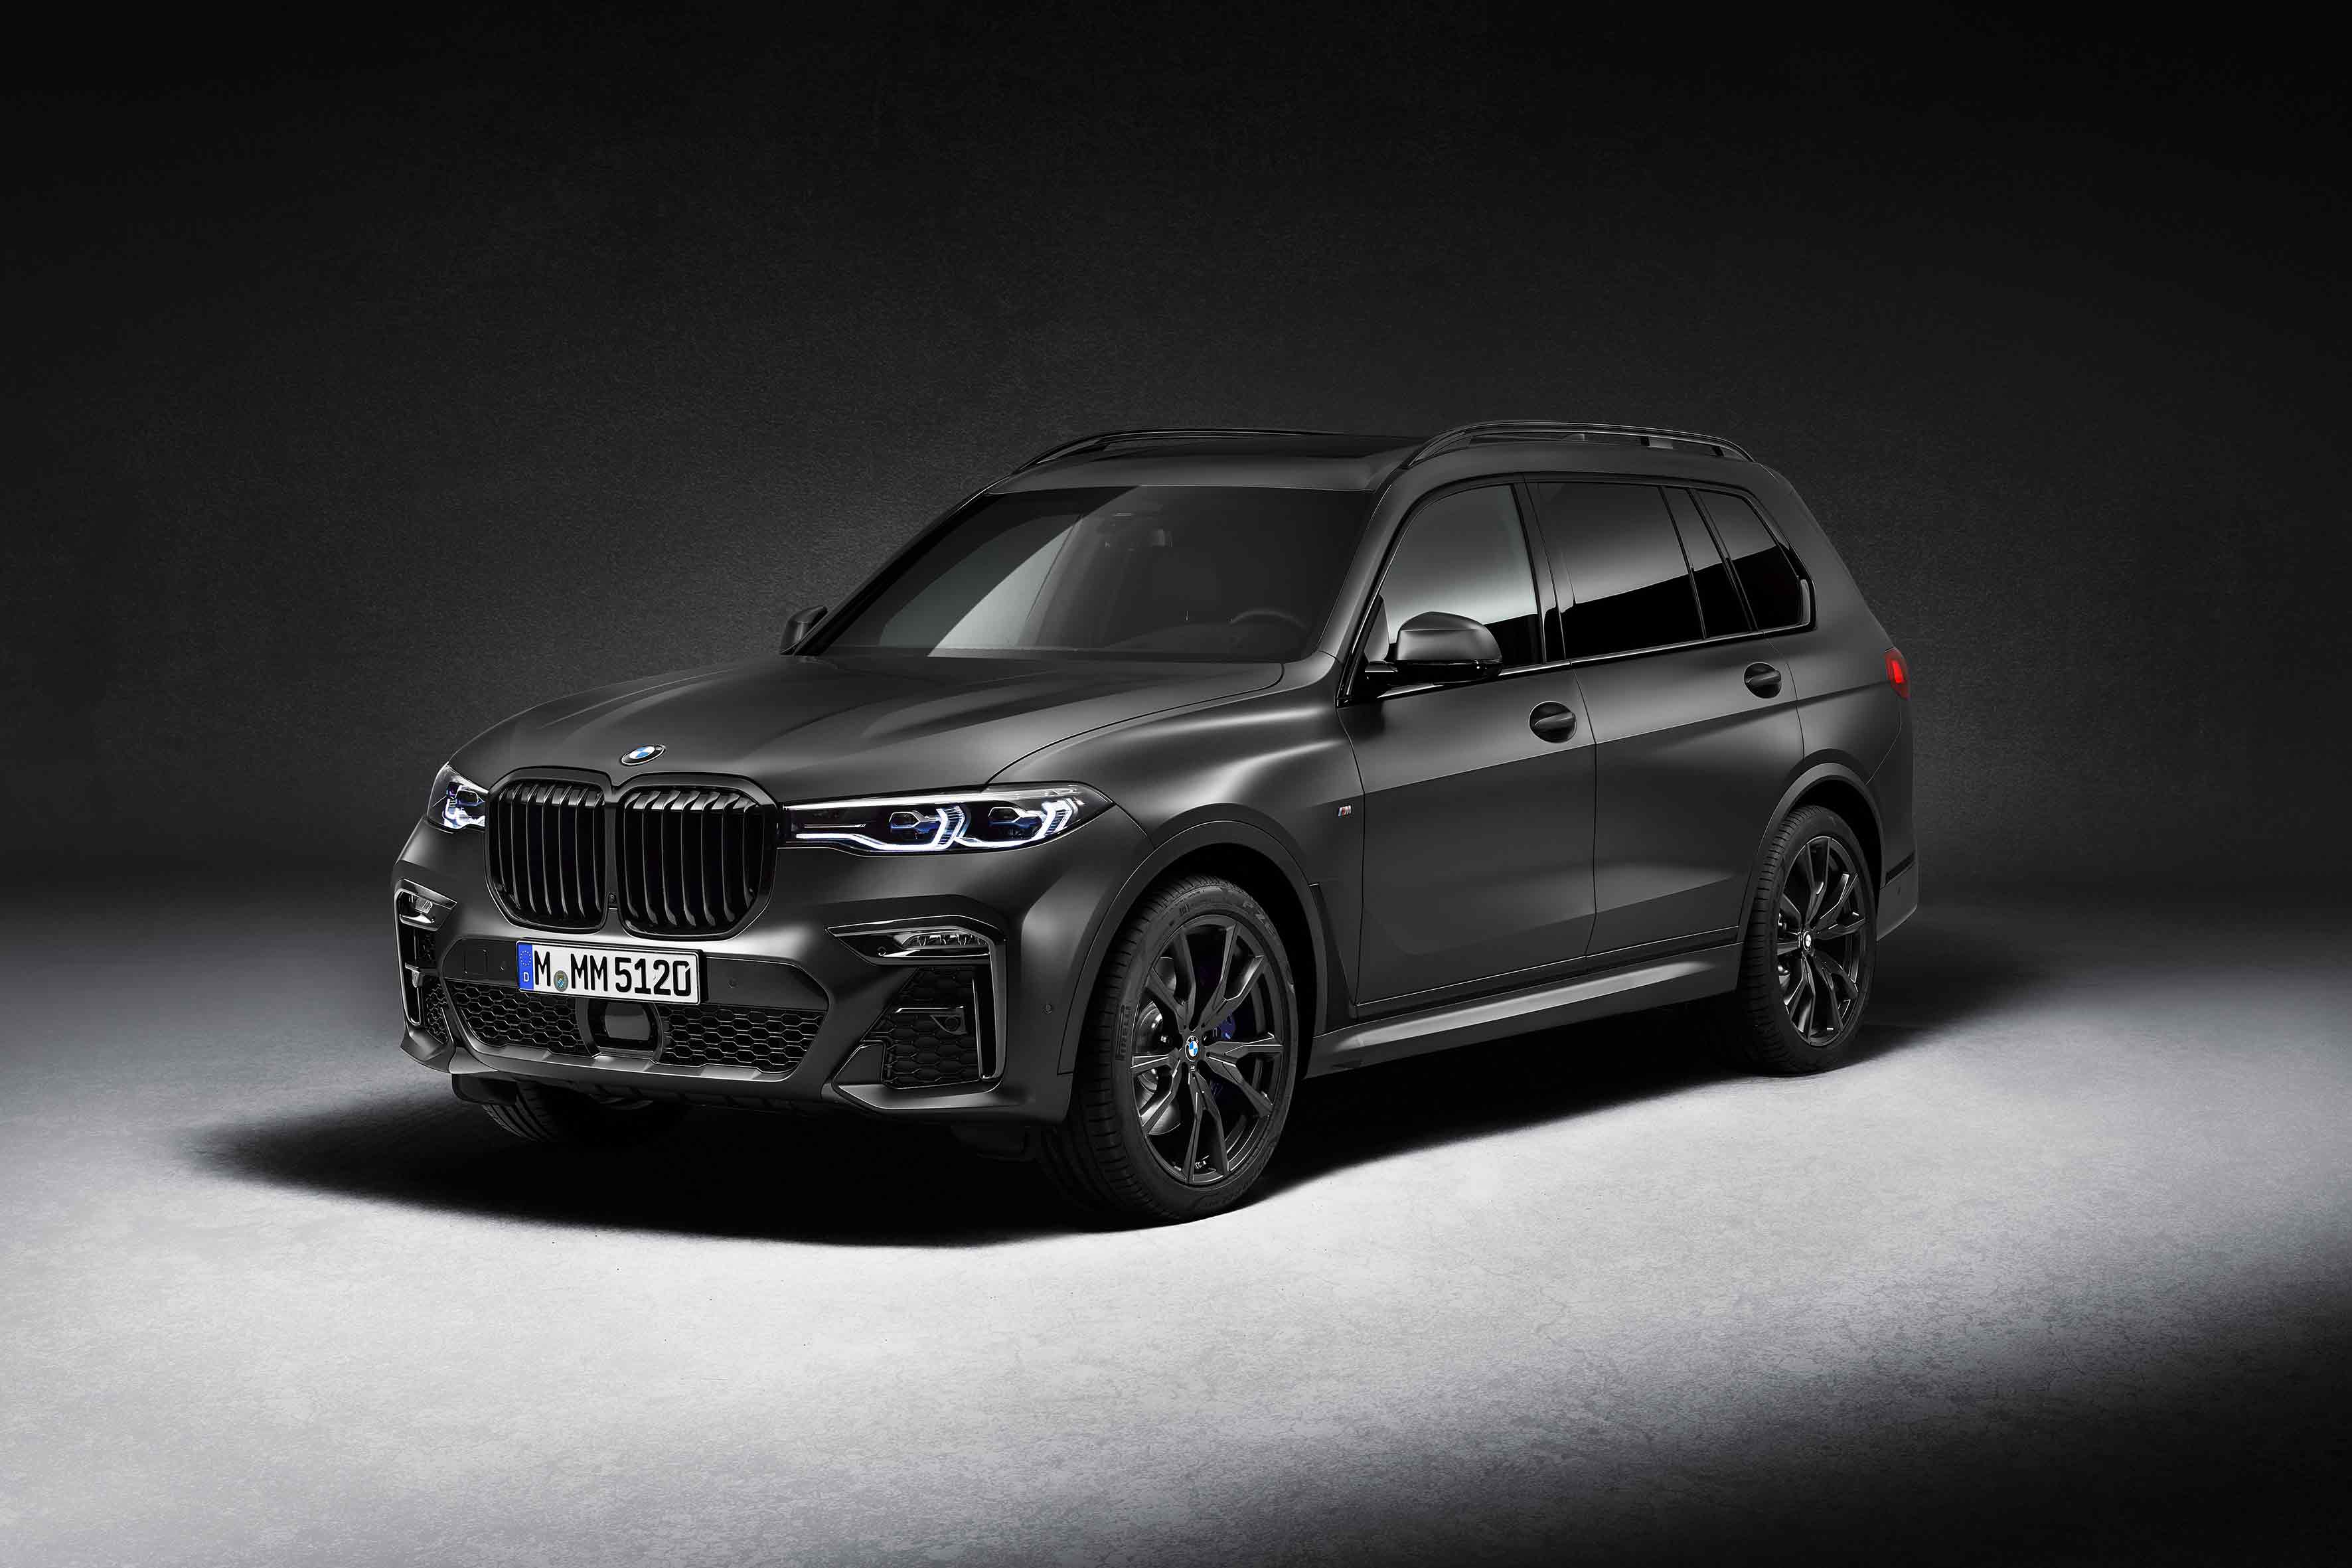 The BMW X7 Dark Shadow Edition